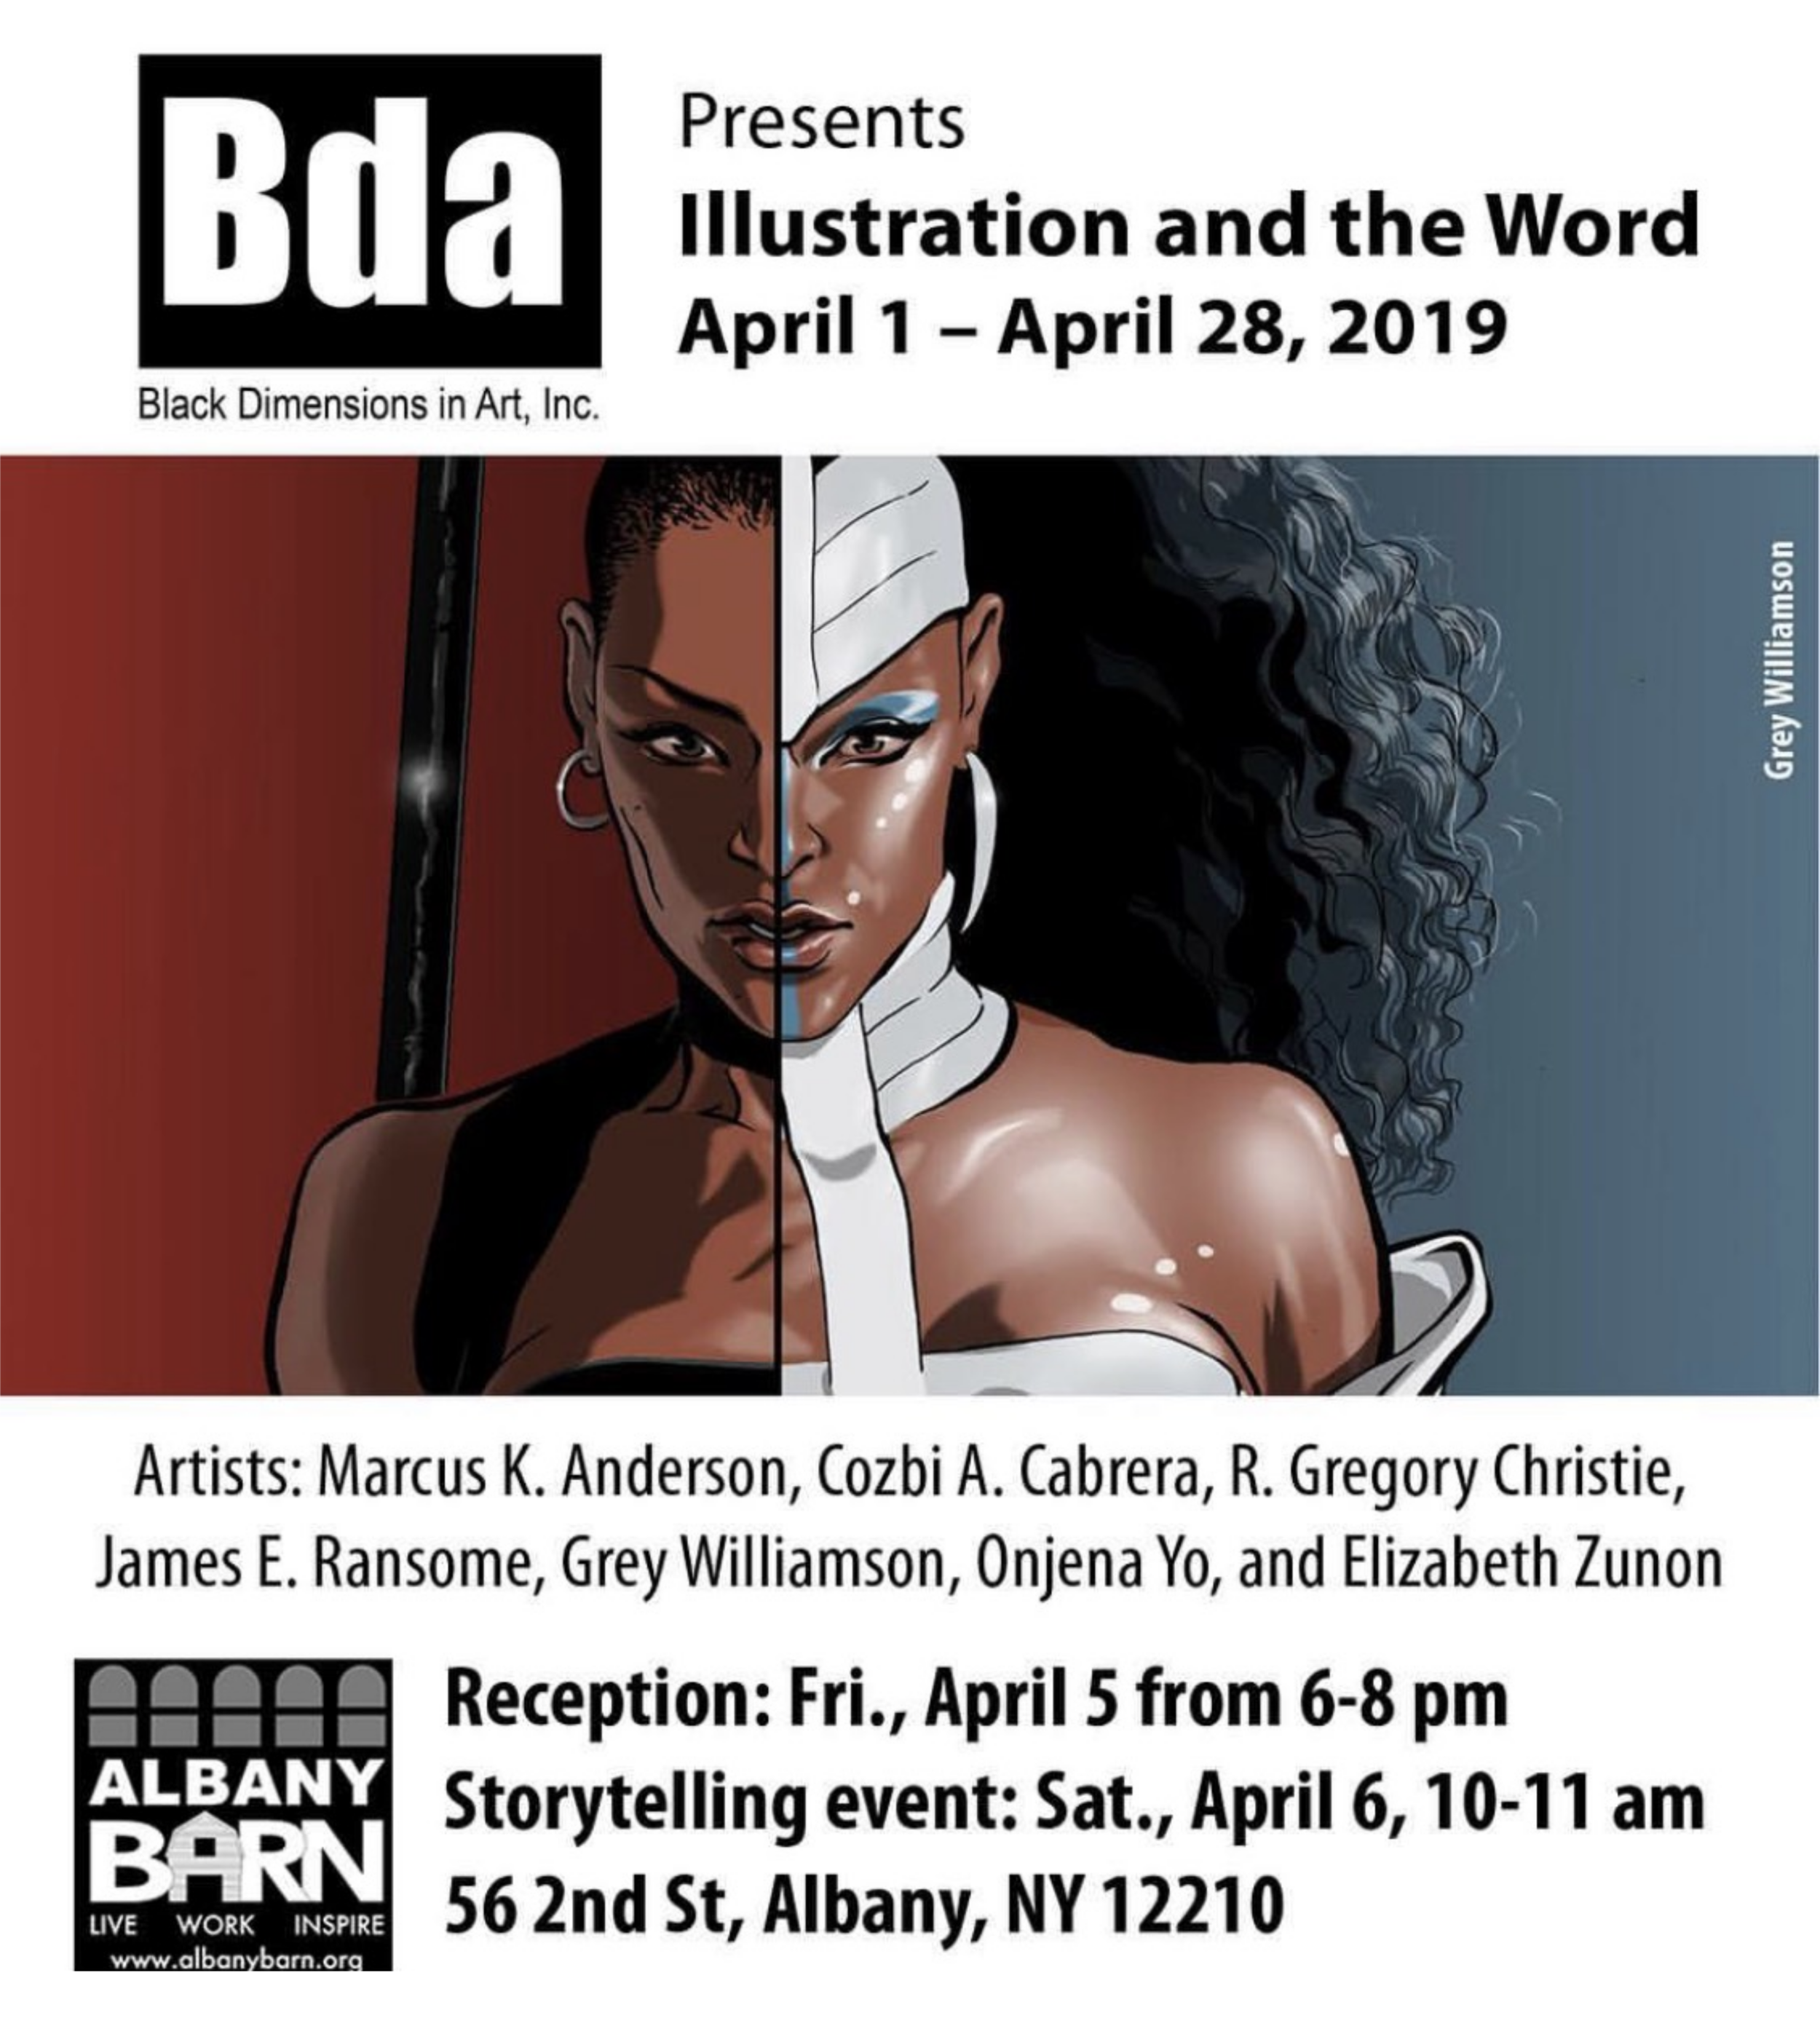 BDA_Exhibit_Illustration_and_the_Word_Albany_Barn_April_2019_3.png